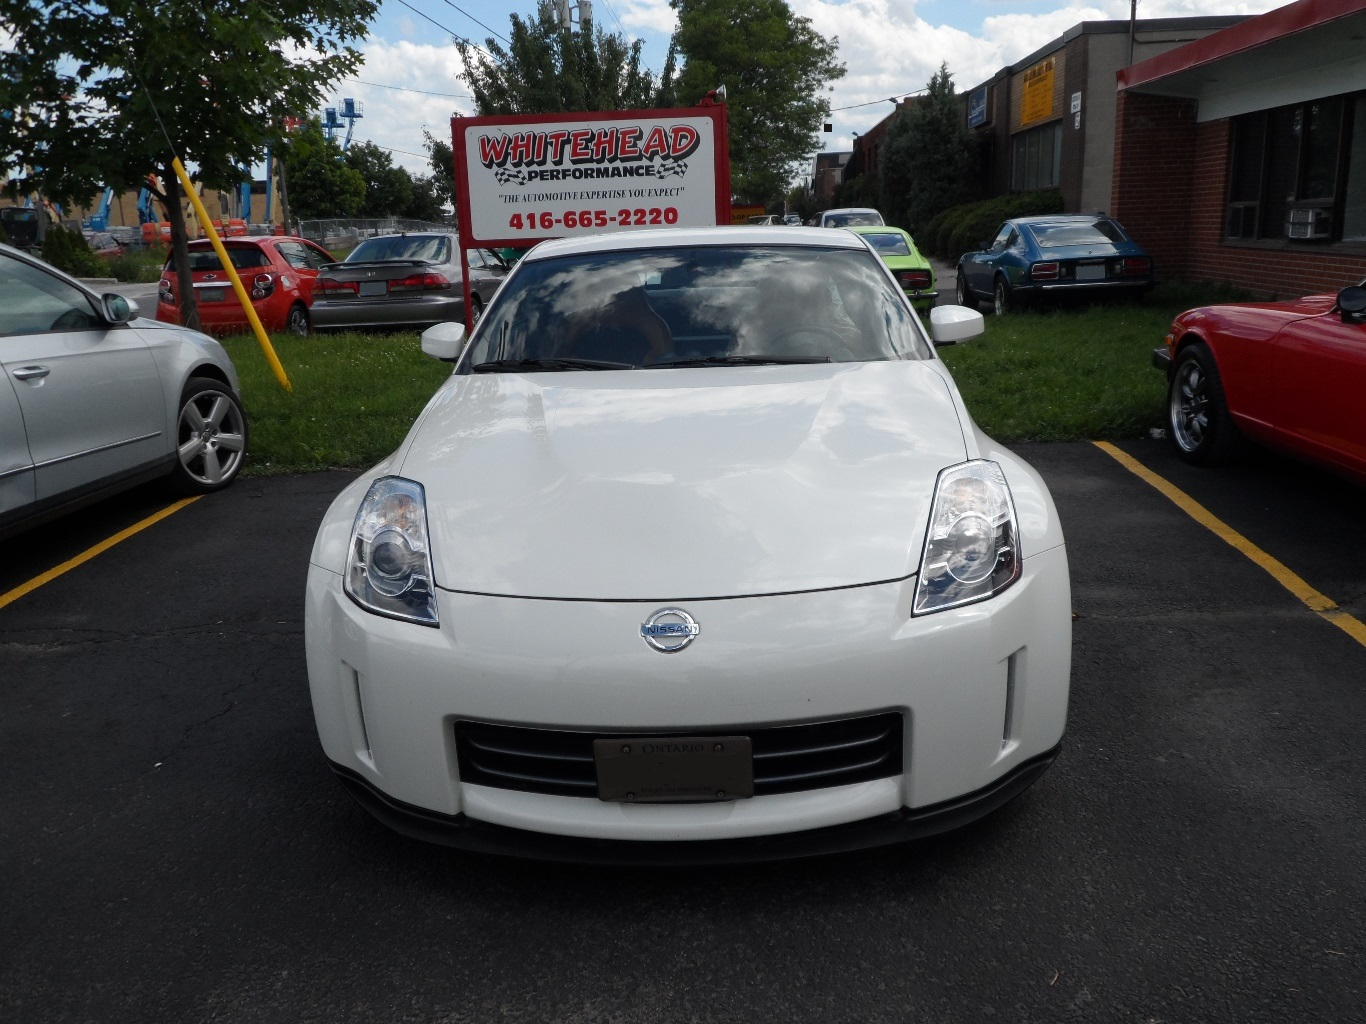 2007 nissan 350z stillen hks exhaust upgrades jwt clutch flywheel whitehead performance. Black Bedroom Furniture Sets. Home Design Ideas